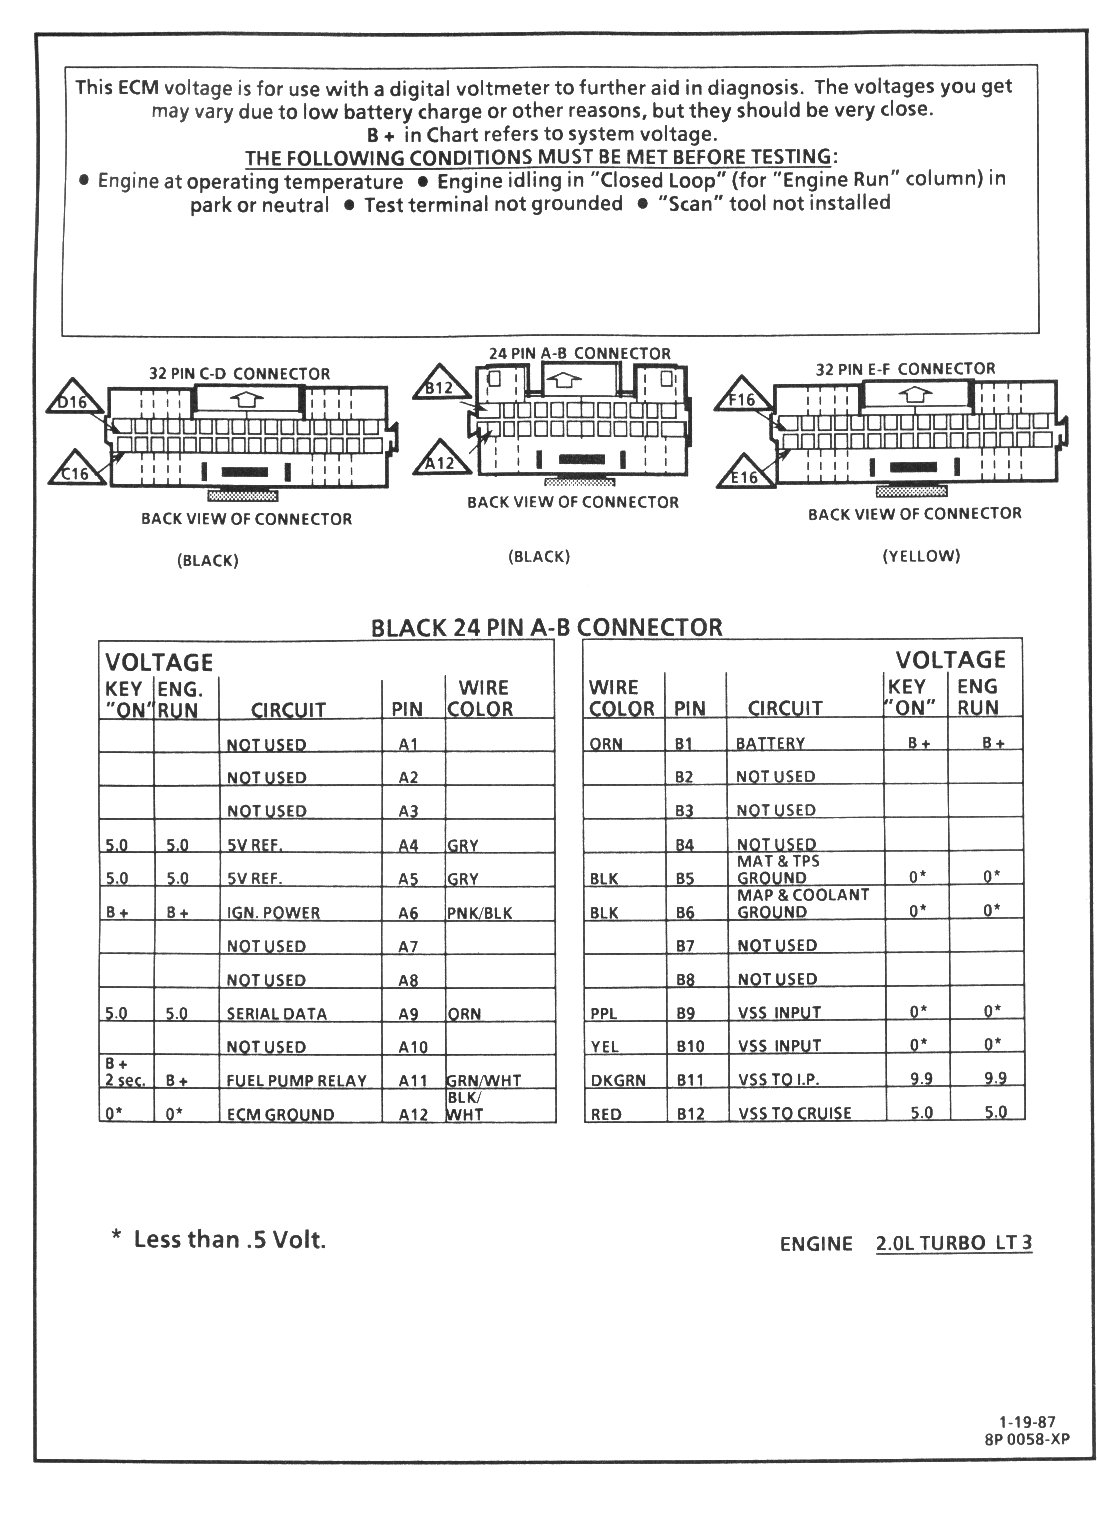 ddec 2 ecm wiring diagram ford falcon au stereo 5 25 images